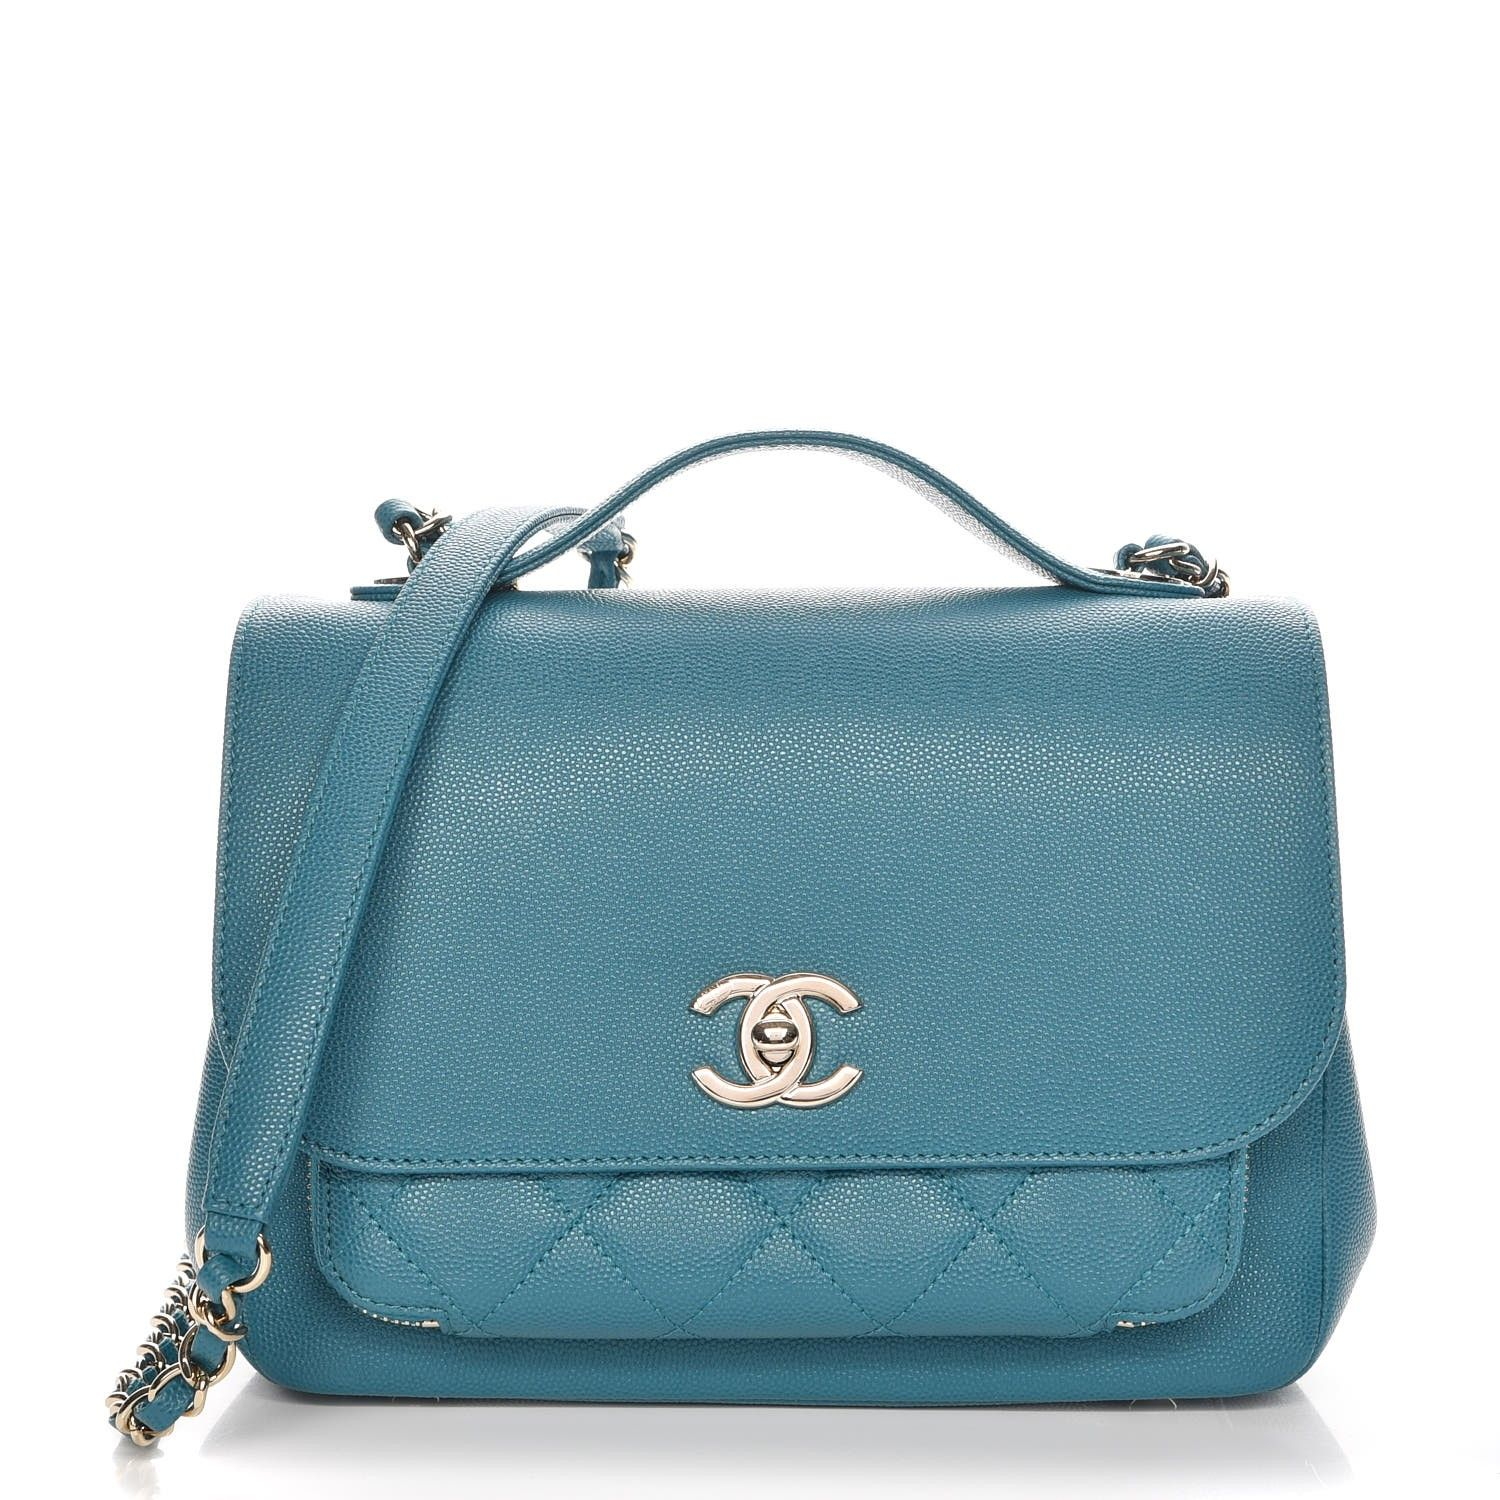 8dc46ac48f87 This is an authentic CHANEL Caviar Quilted Small Business Affinity Flap in  Green. This sleek